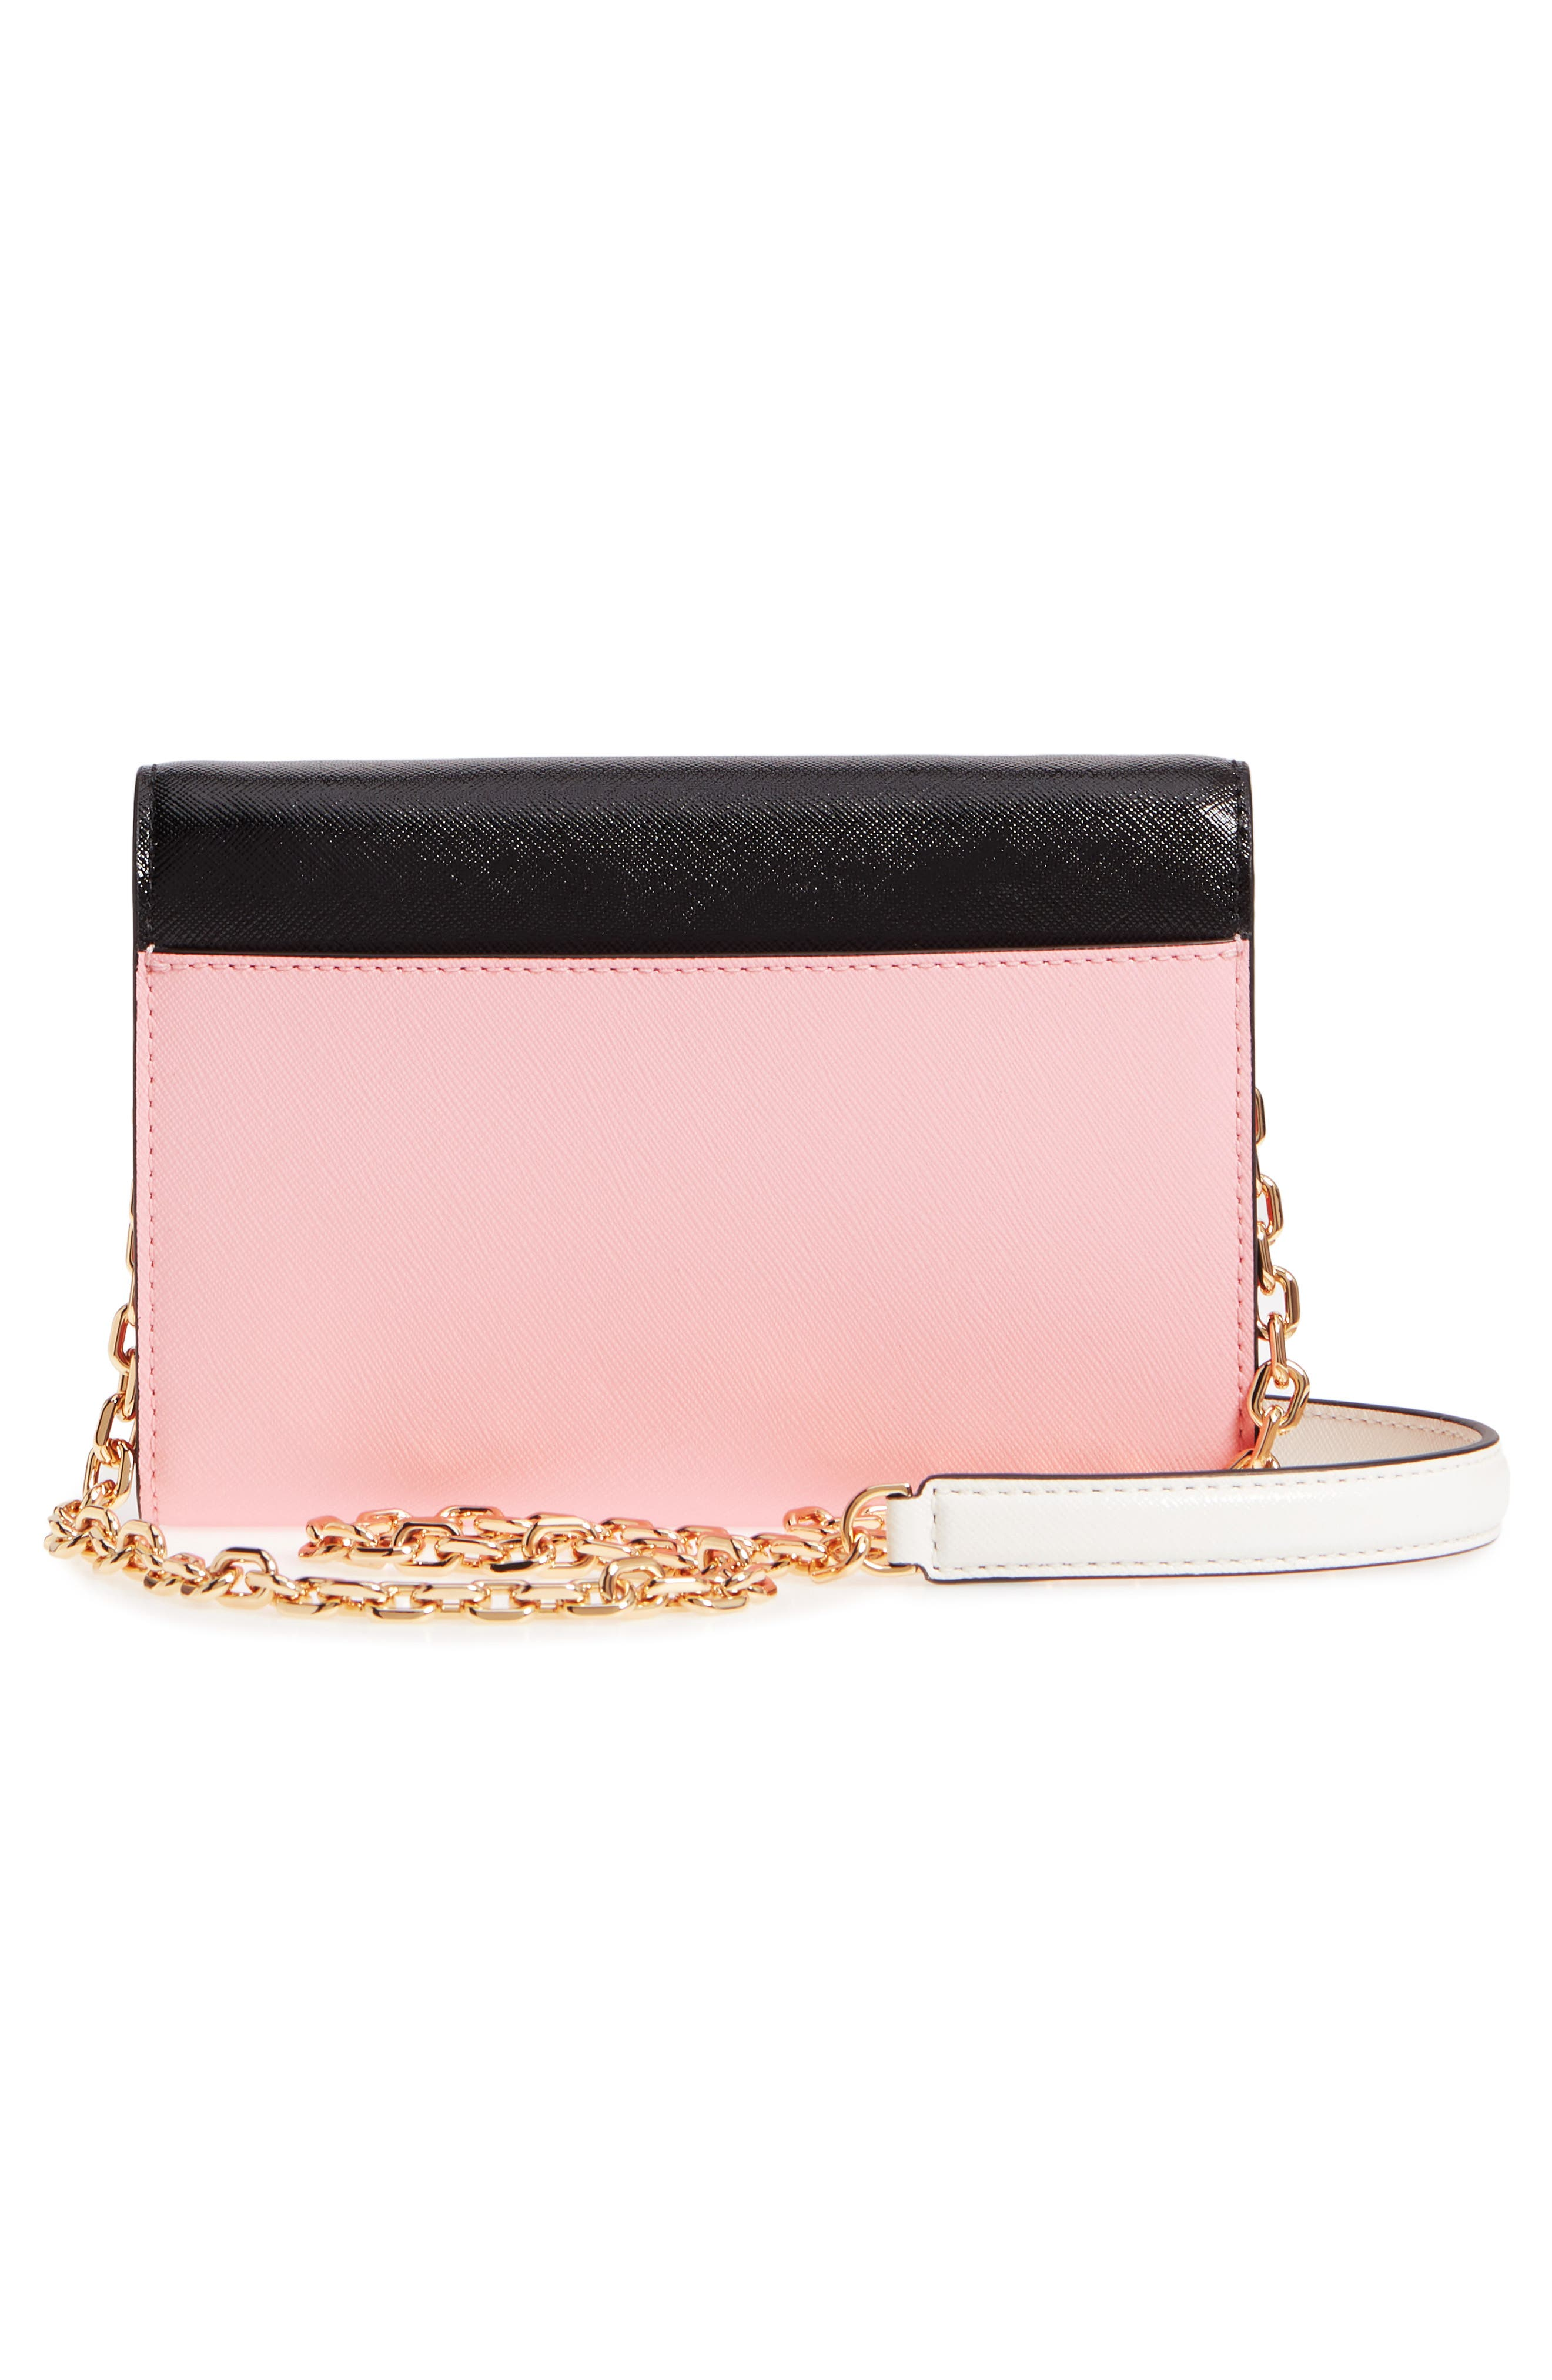 Snapshot Leather Wallet on a Chain,                             Alternate thumbnail 6, color,                             Black/ Baby Pink